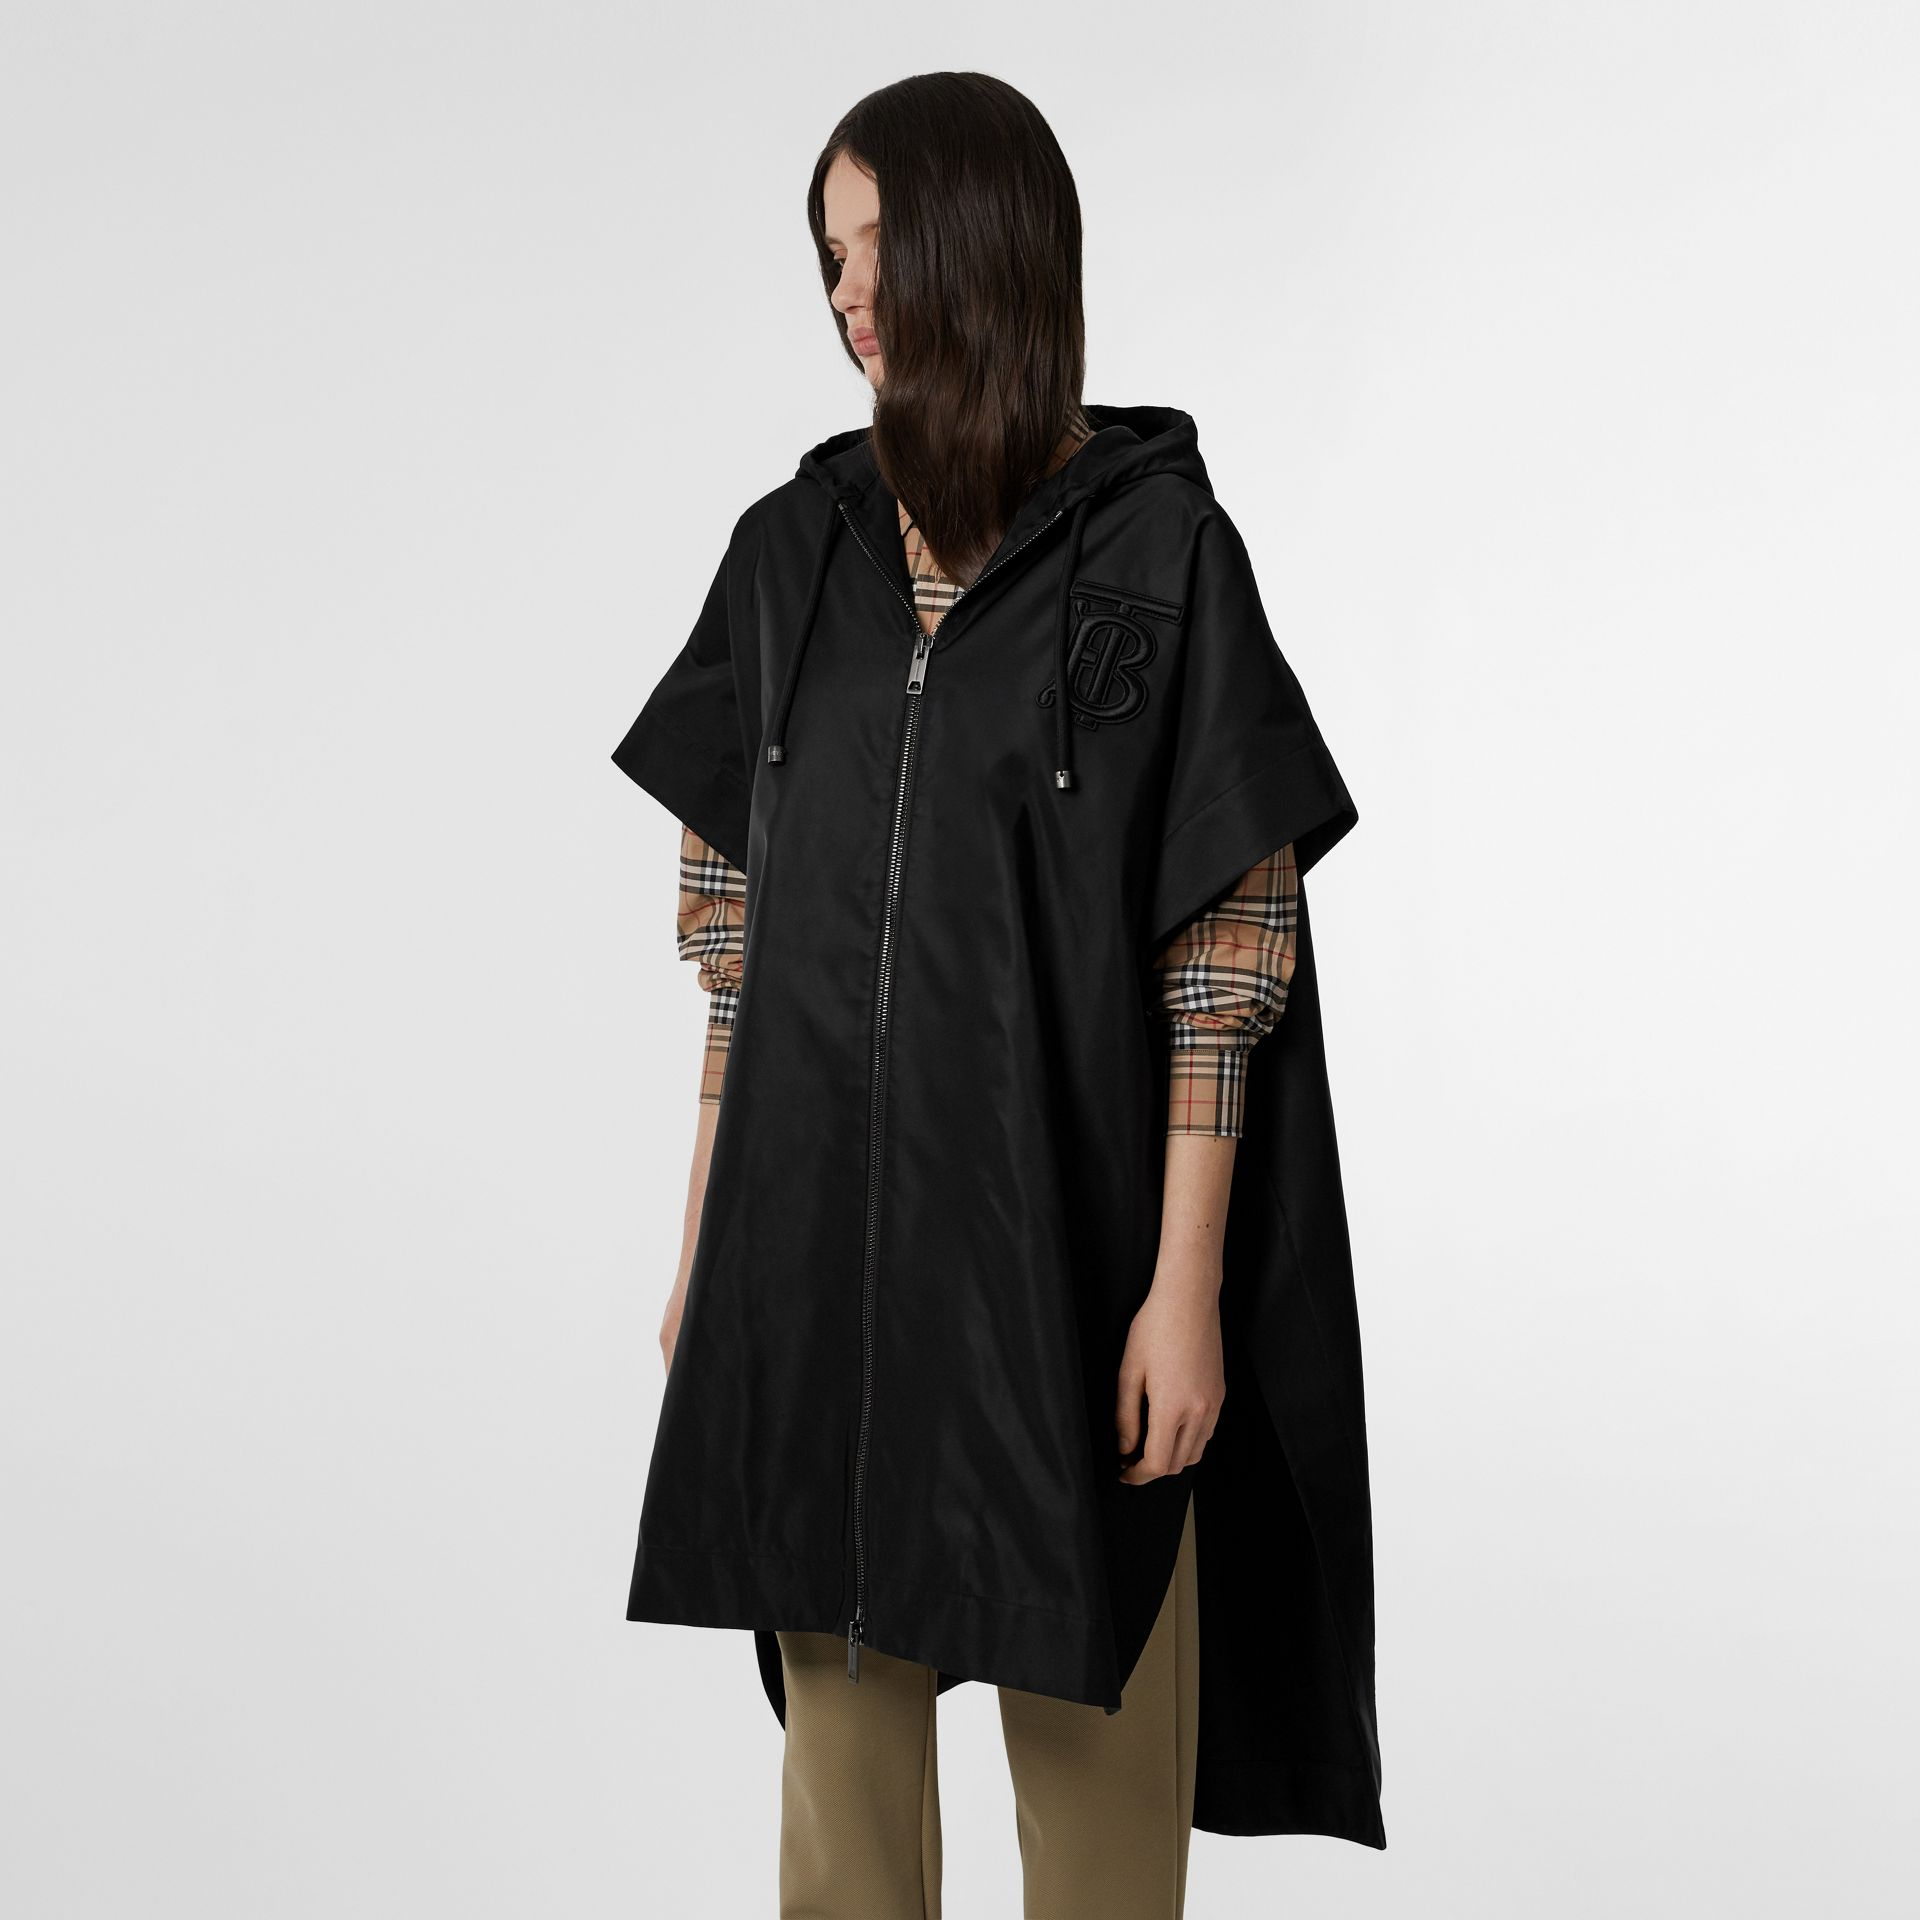 Monogram Motif Nylon Oversized Hooded Poncho in Black | Burberry Singapore - gallery image 10